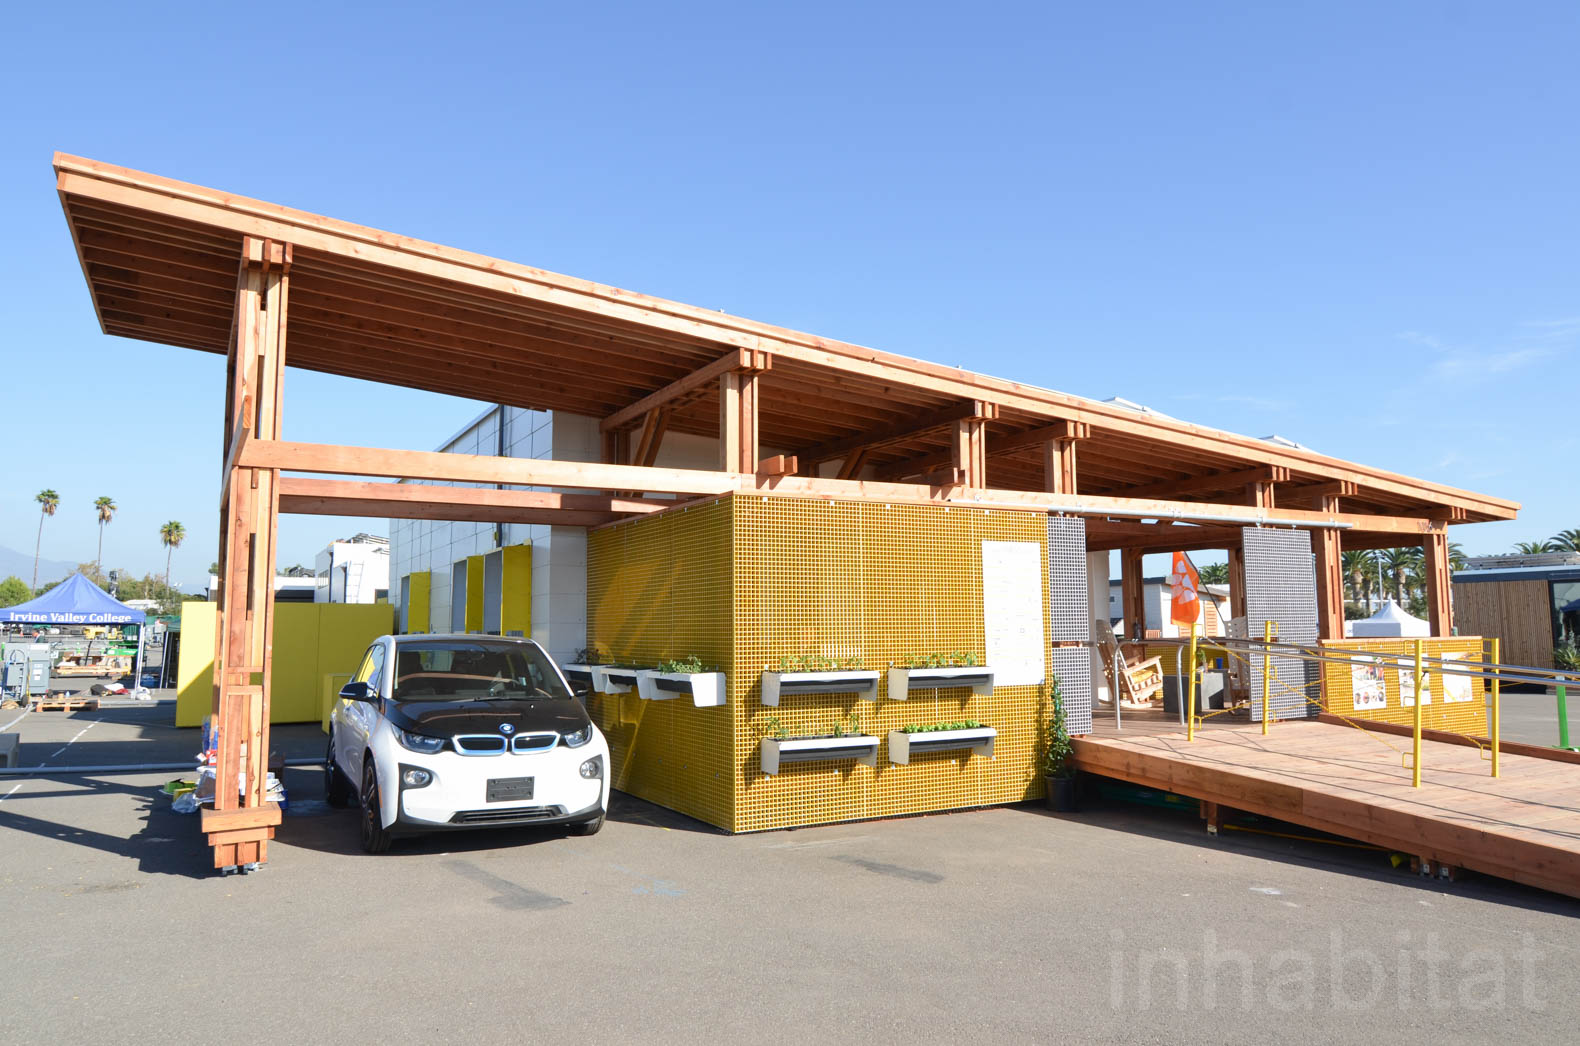 """This tiny """"e-mailable"""" solar house snaps together like a 3D puzzle without a single nail"""